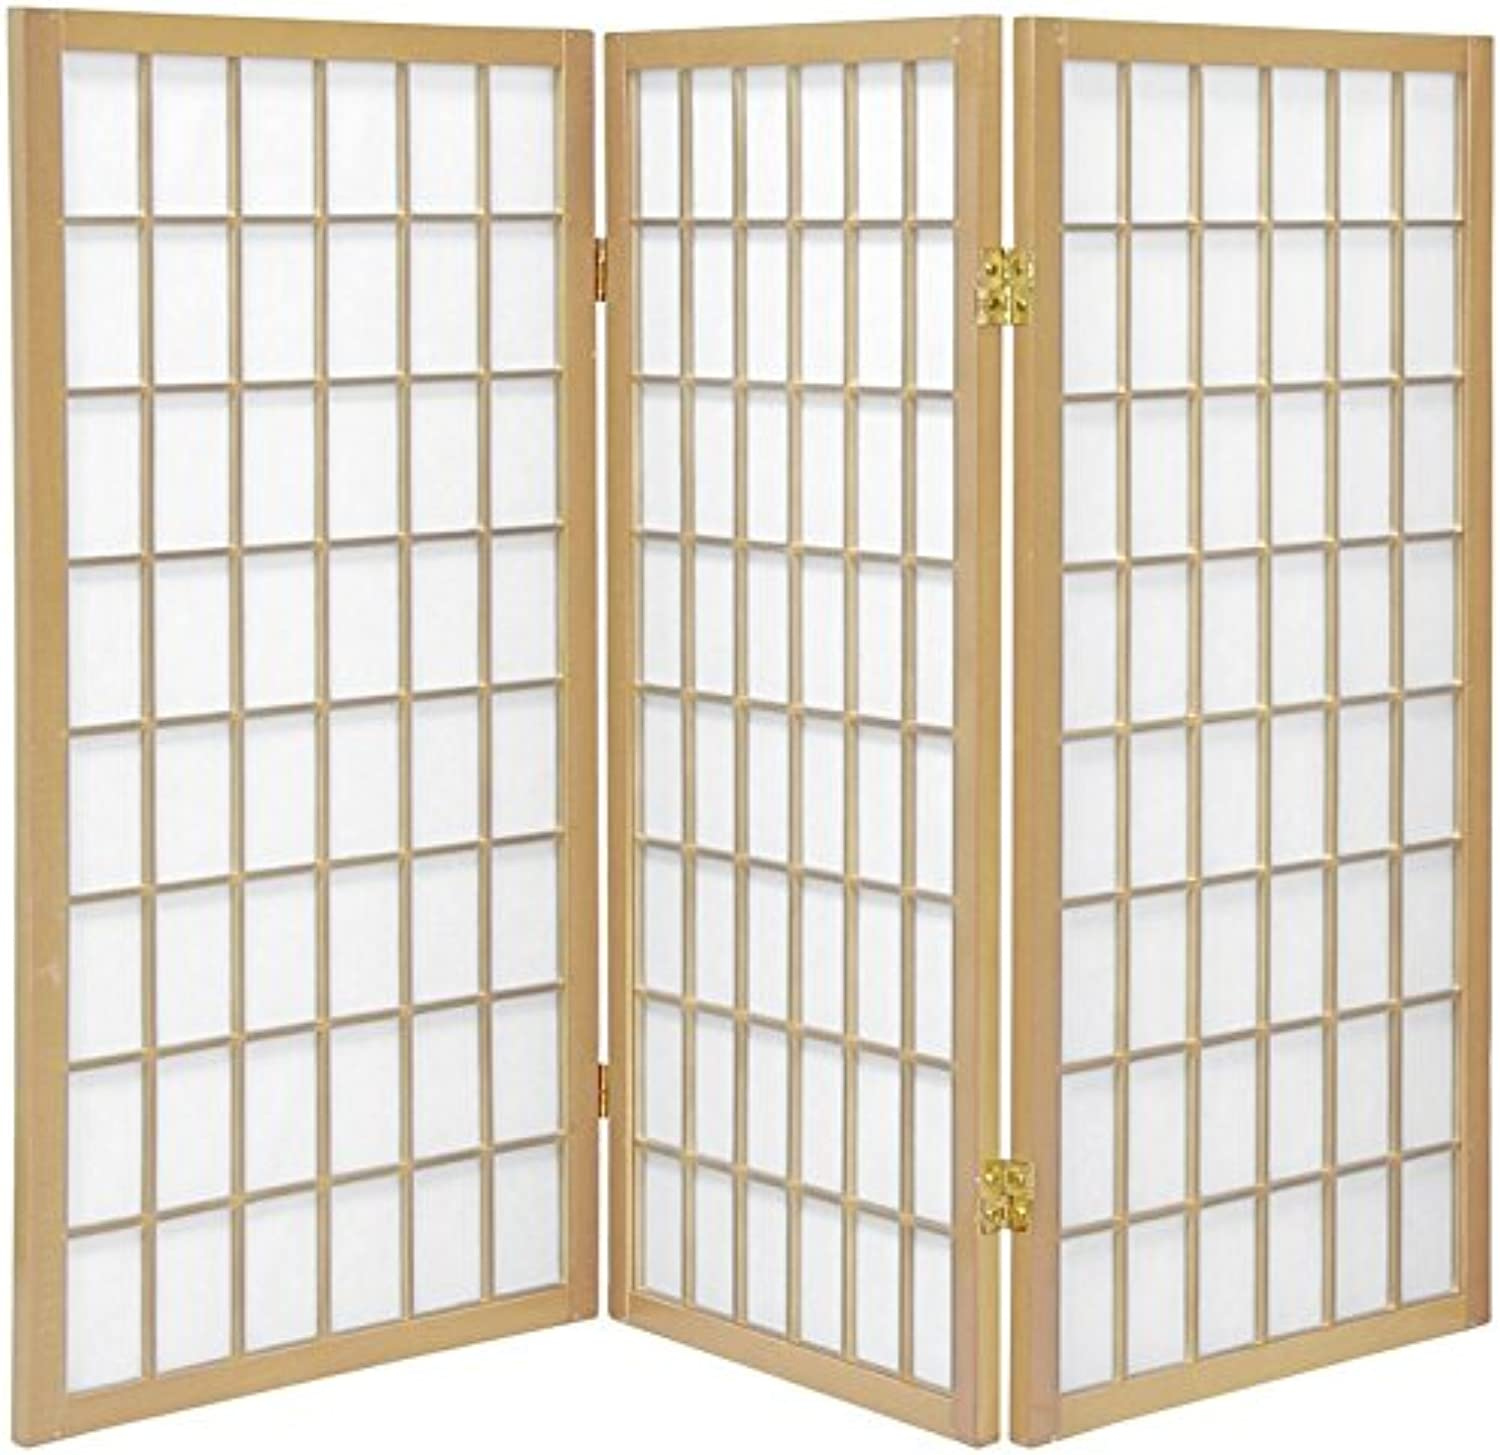 Oriental Furniture Low Minature Little, 3-Feet Window Pane Small Shoji Privacy Screen Room Divider, 3 Panel Natural